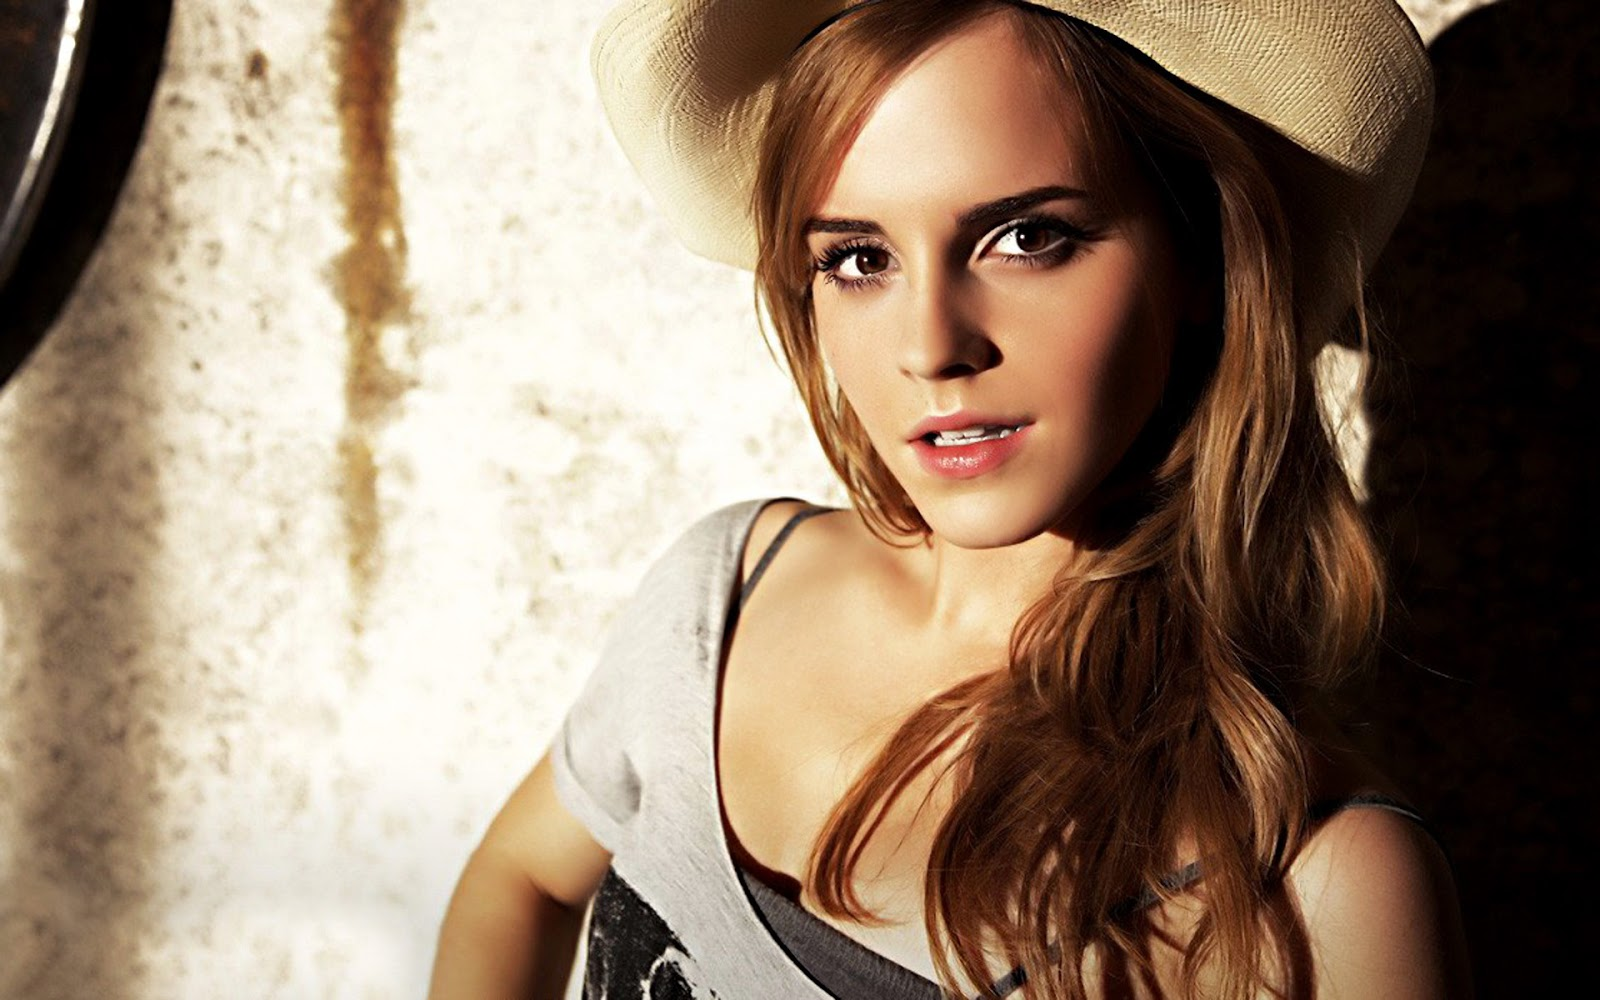 Wellcome to bollywood hd wallpapers emma watson hollywood actress full hd wallpapers - Hollywood actress full hd wallpaper ...